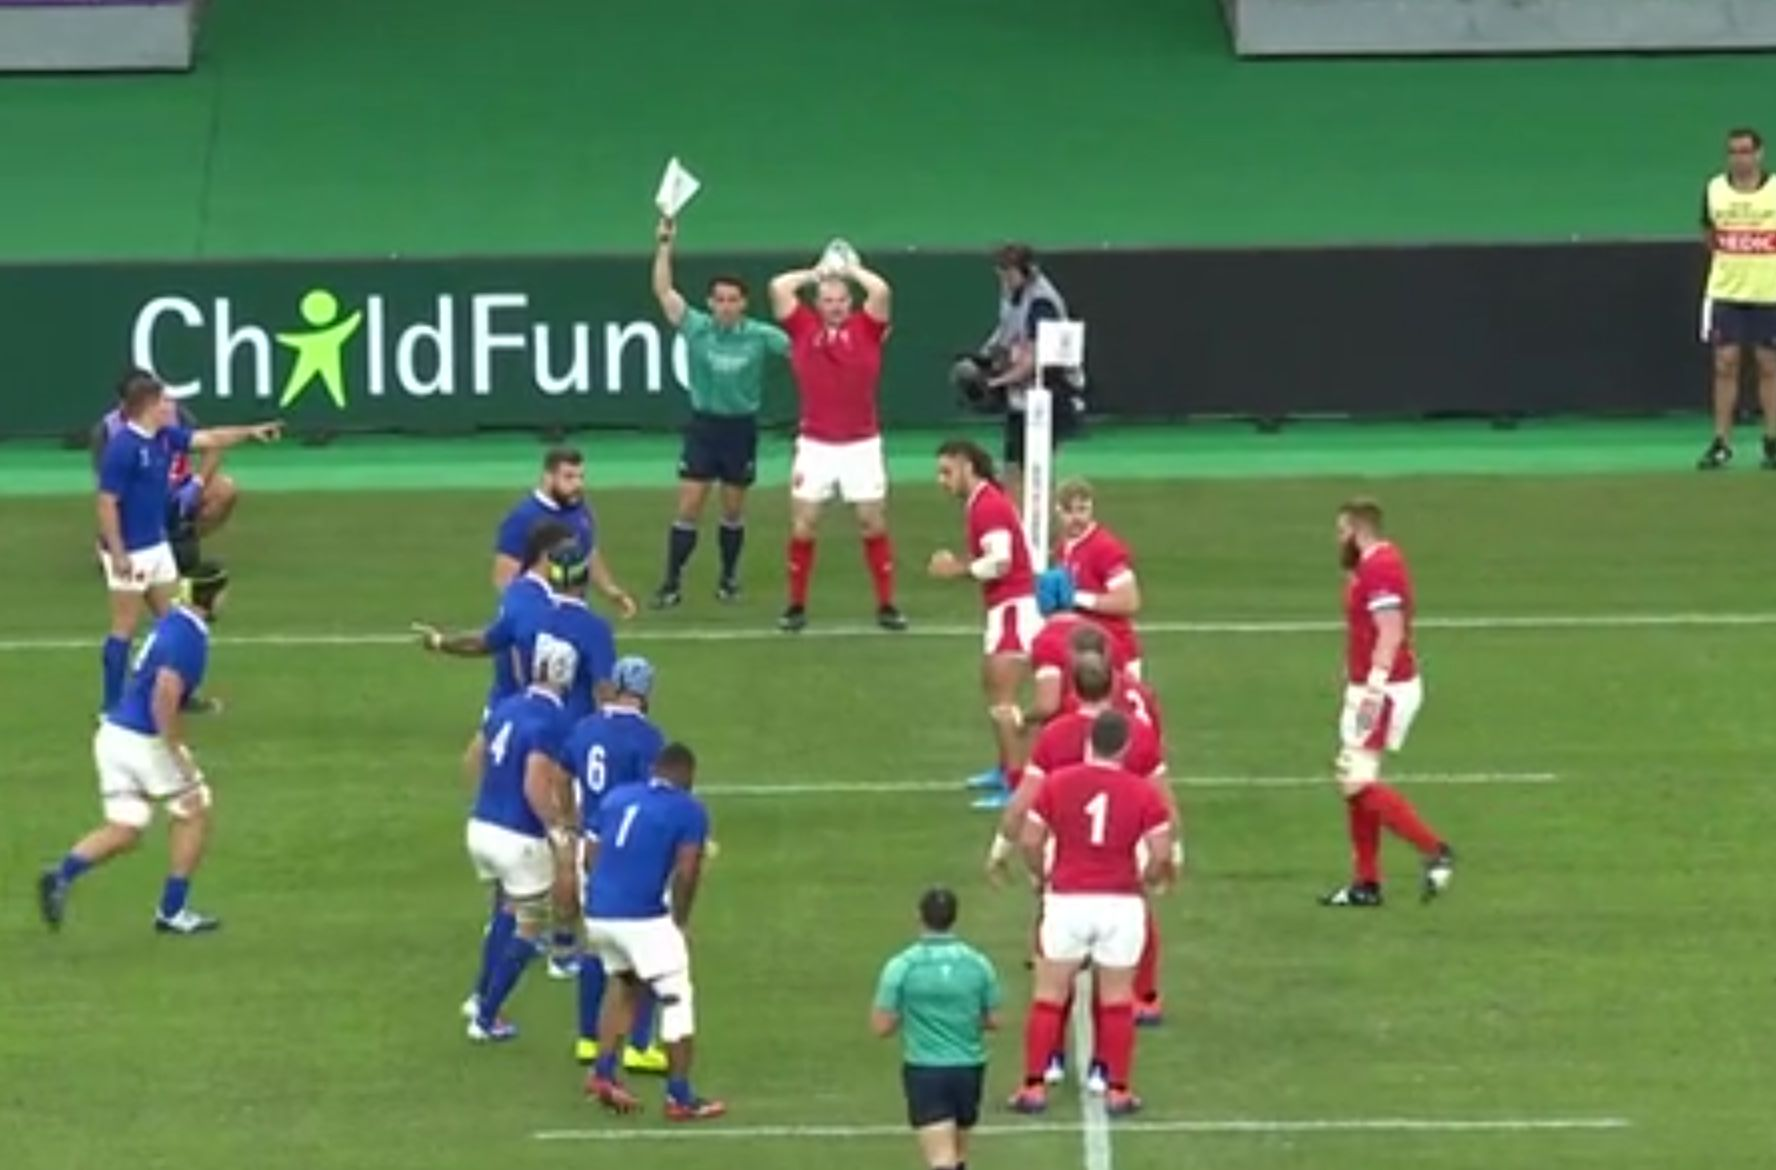 Wales v France Line Out at Rugby World Cup 2019 Wales